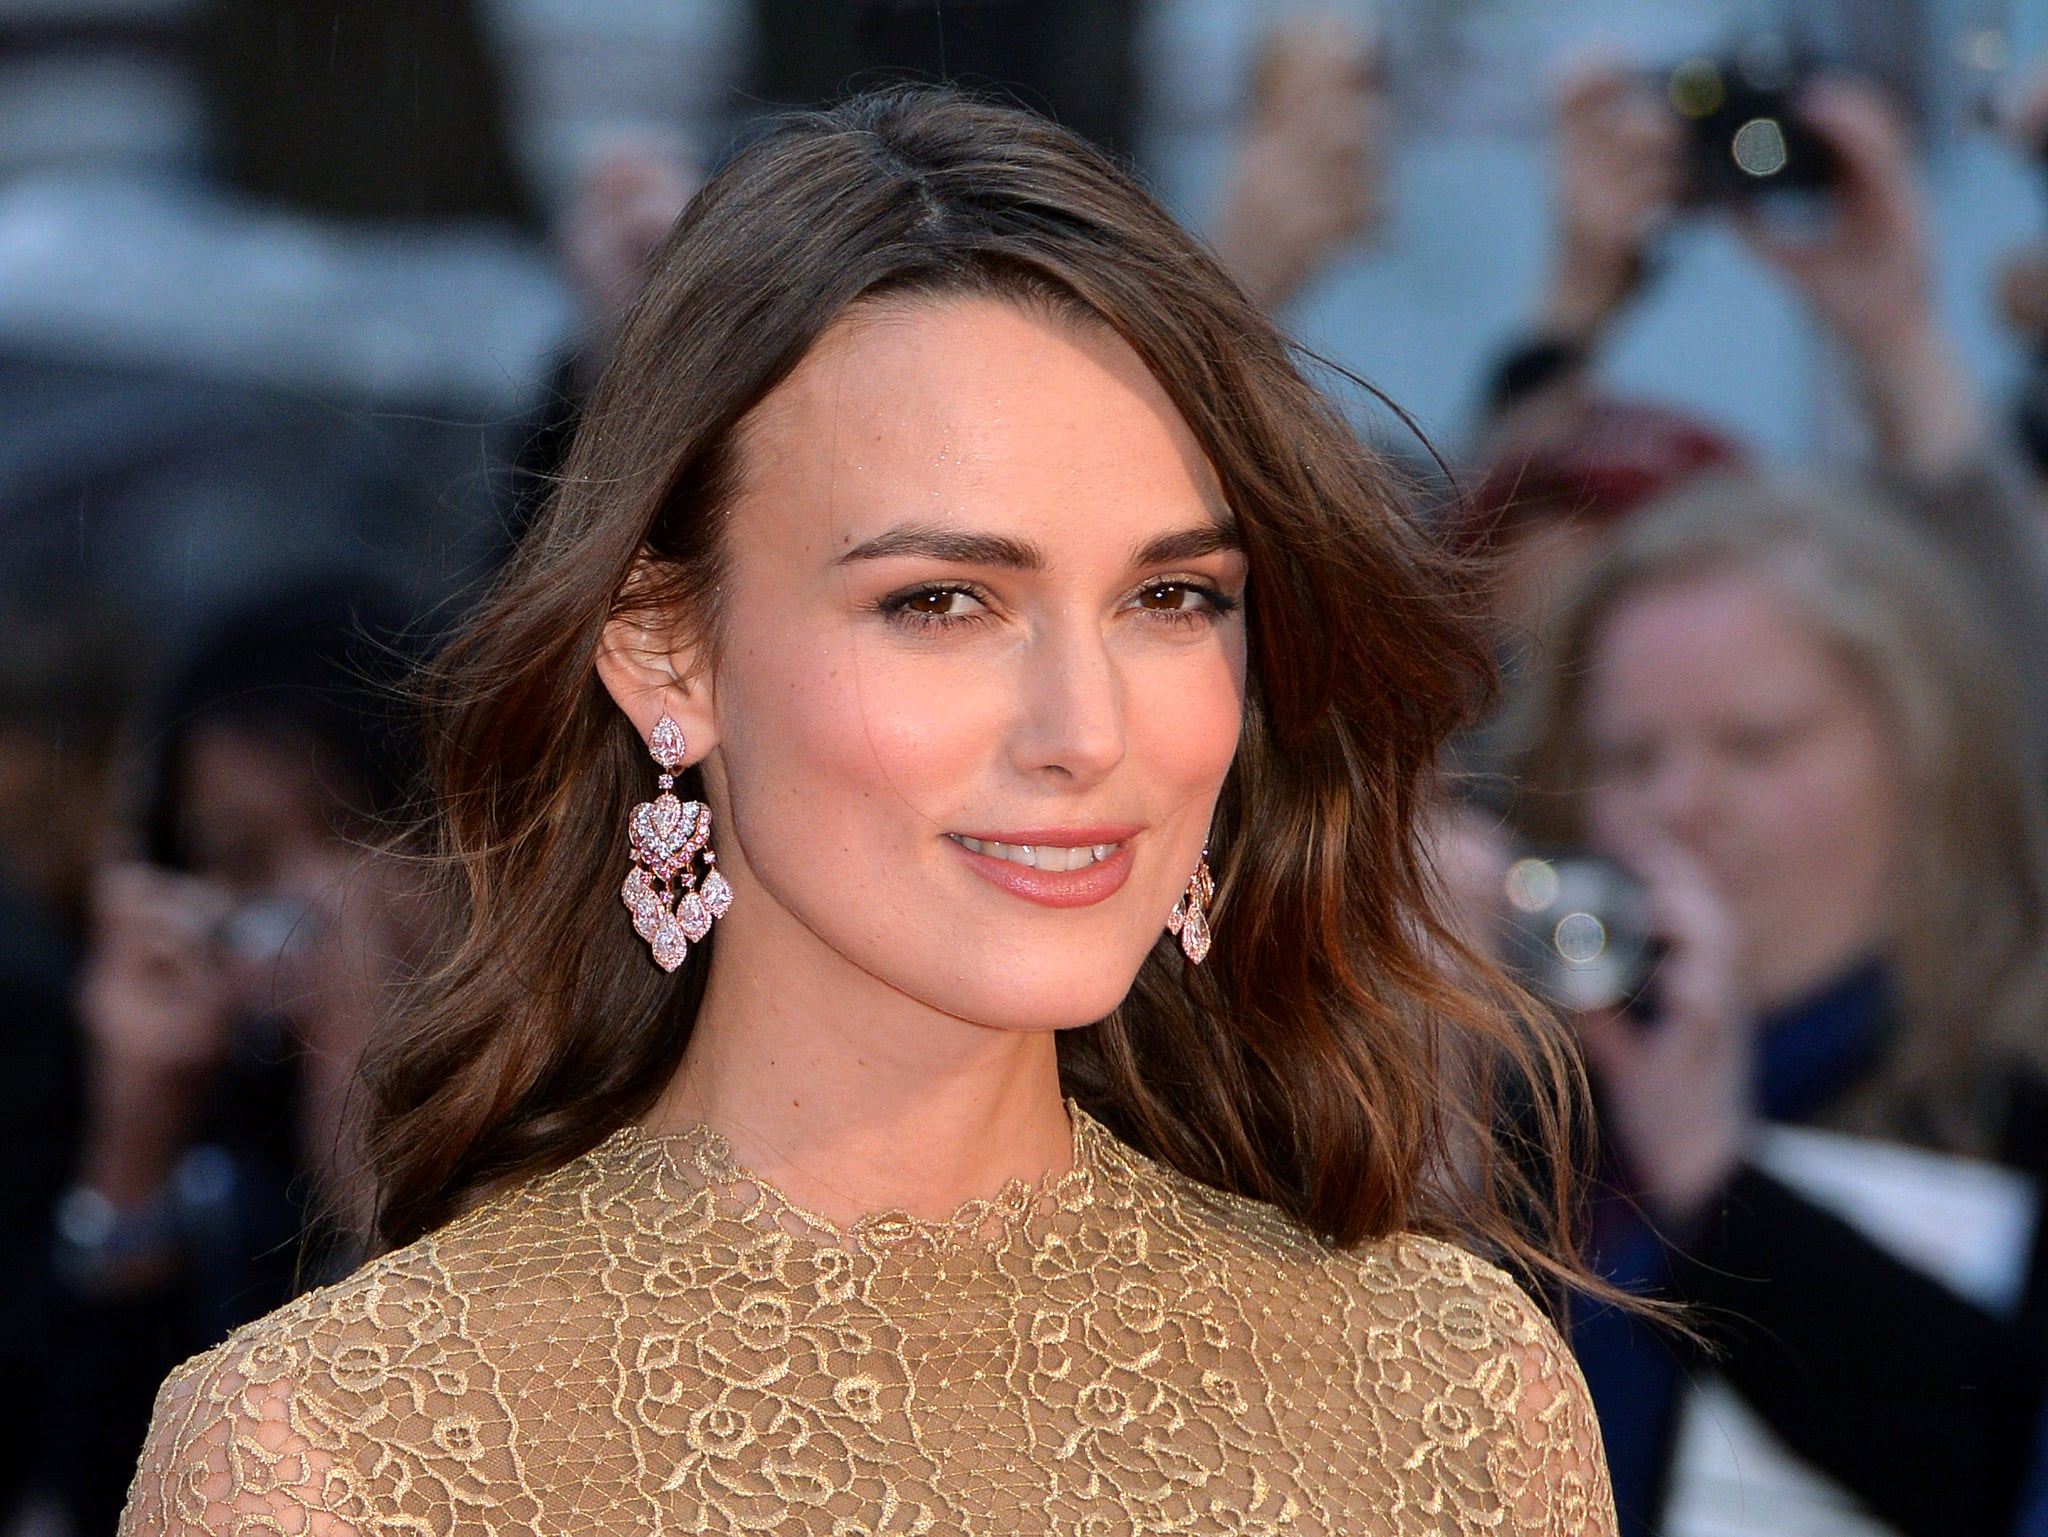 LONDON, ENGLAND - OCTOBER 08:  Keira Knightley attends the opening night gala screening of